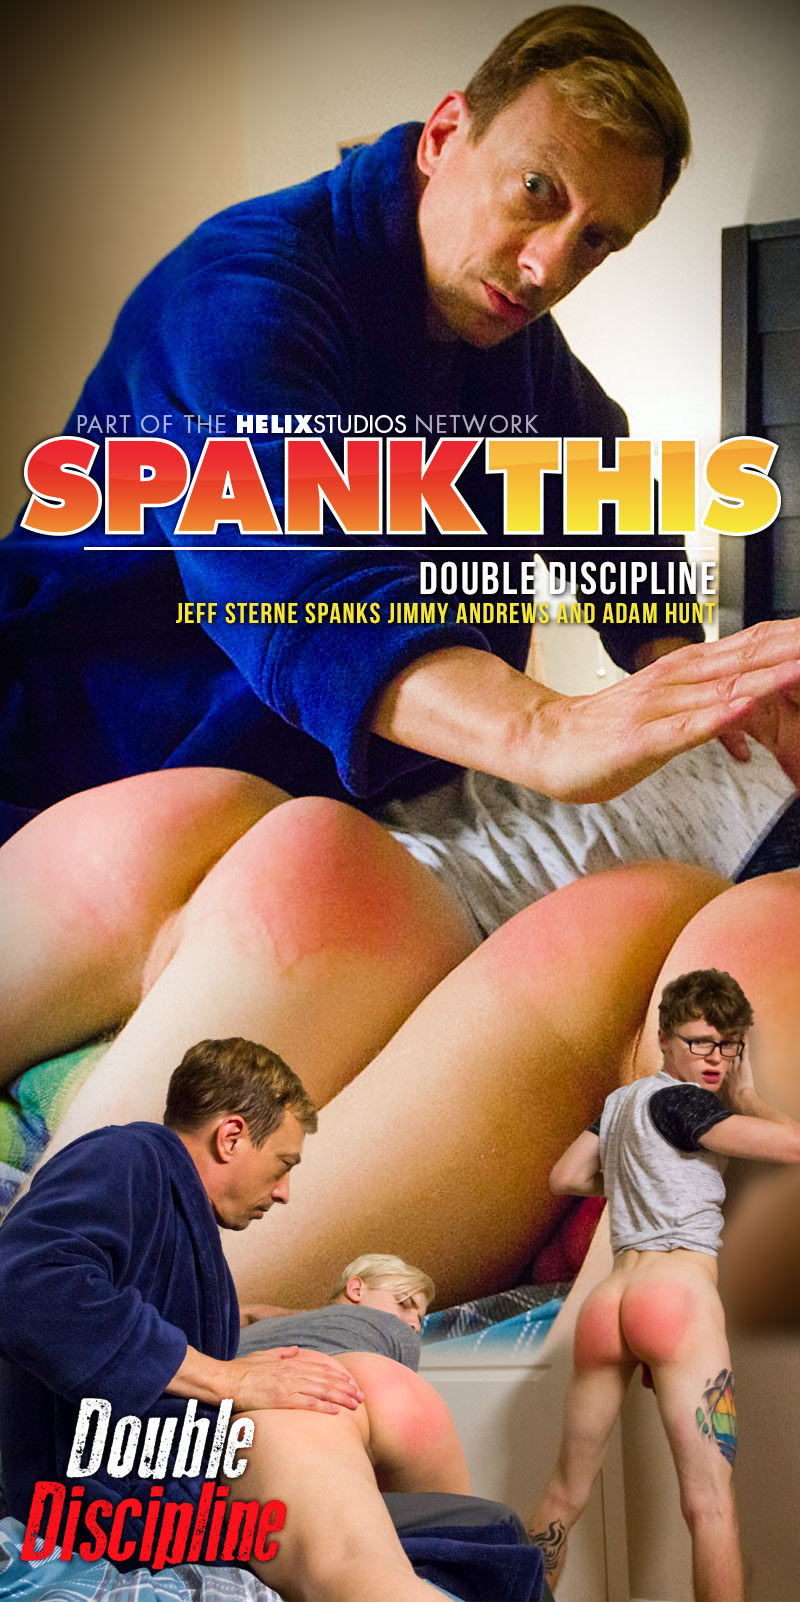 Double Discipline (Jeff Sterne Spanks Jimmy Andrews and Adam Hunt) at SpankThis!